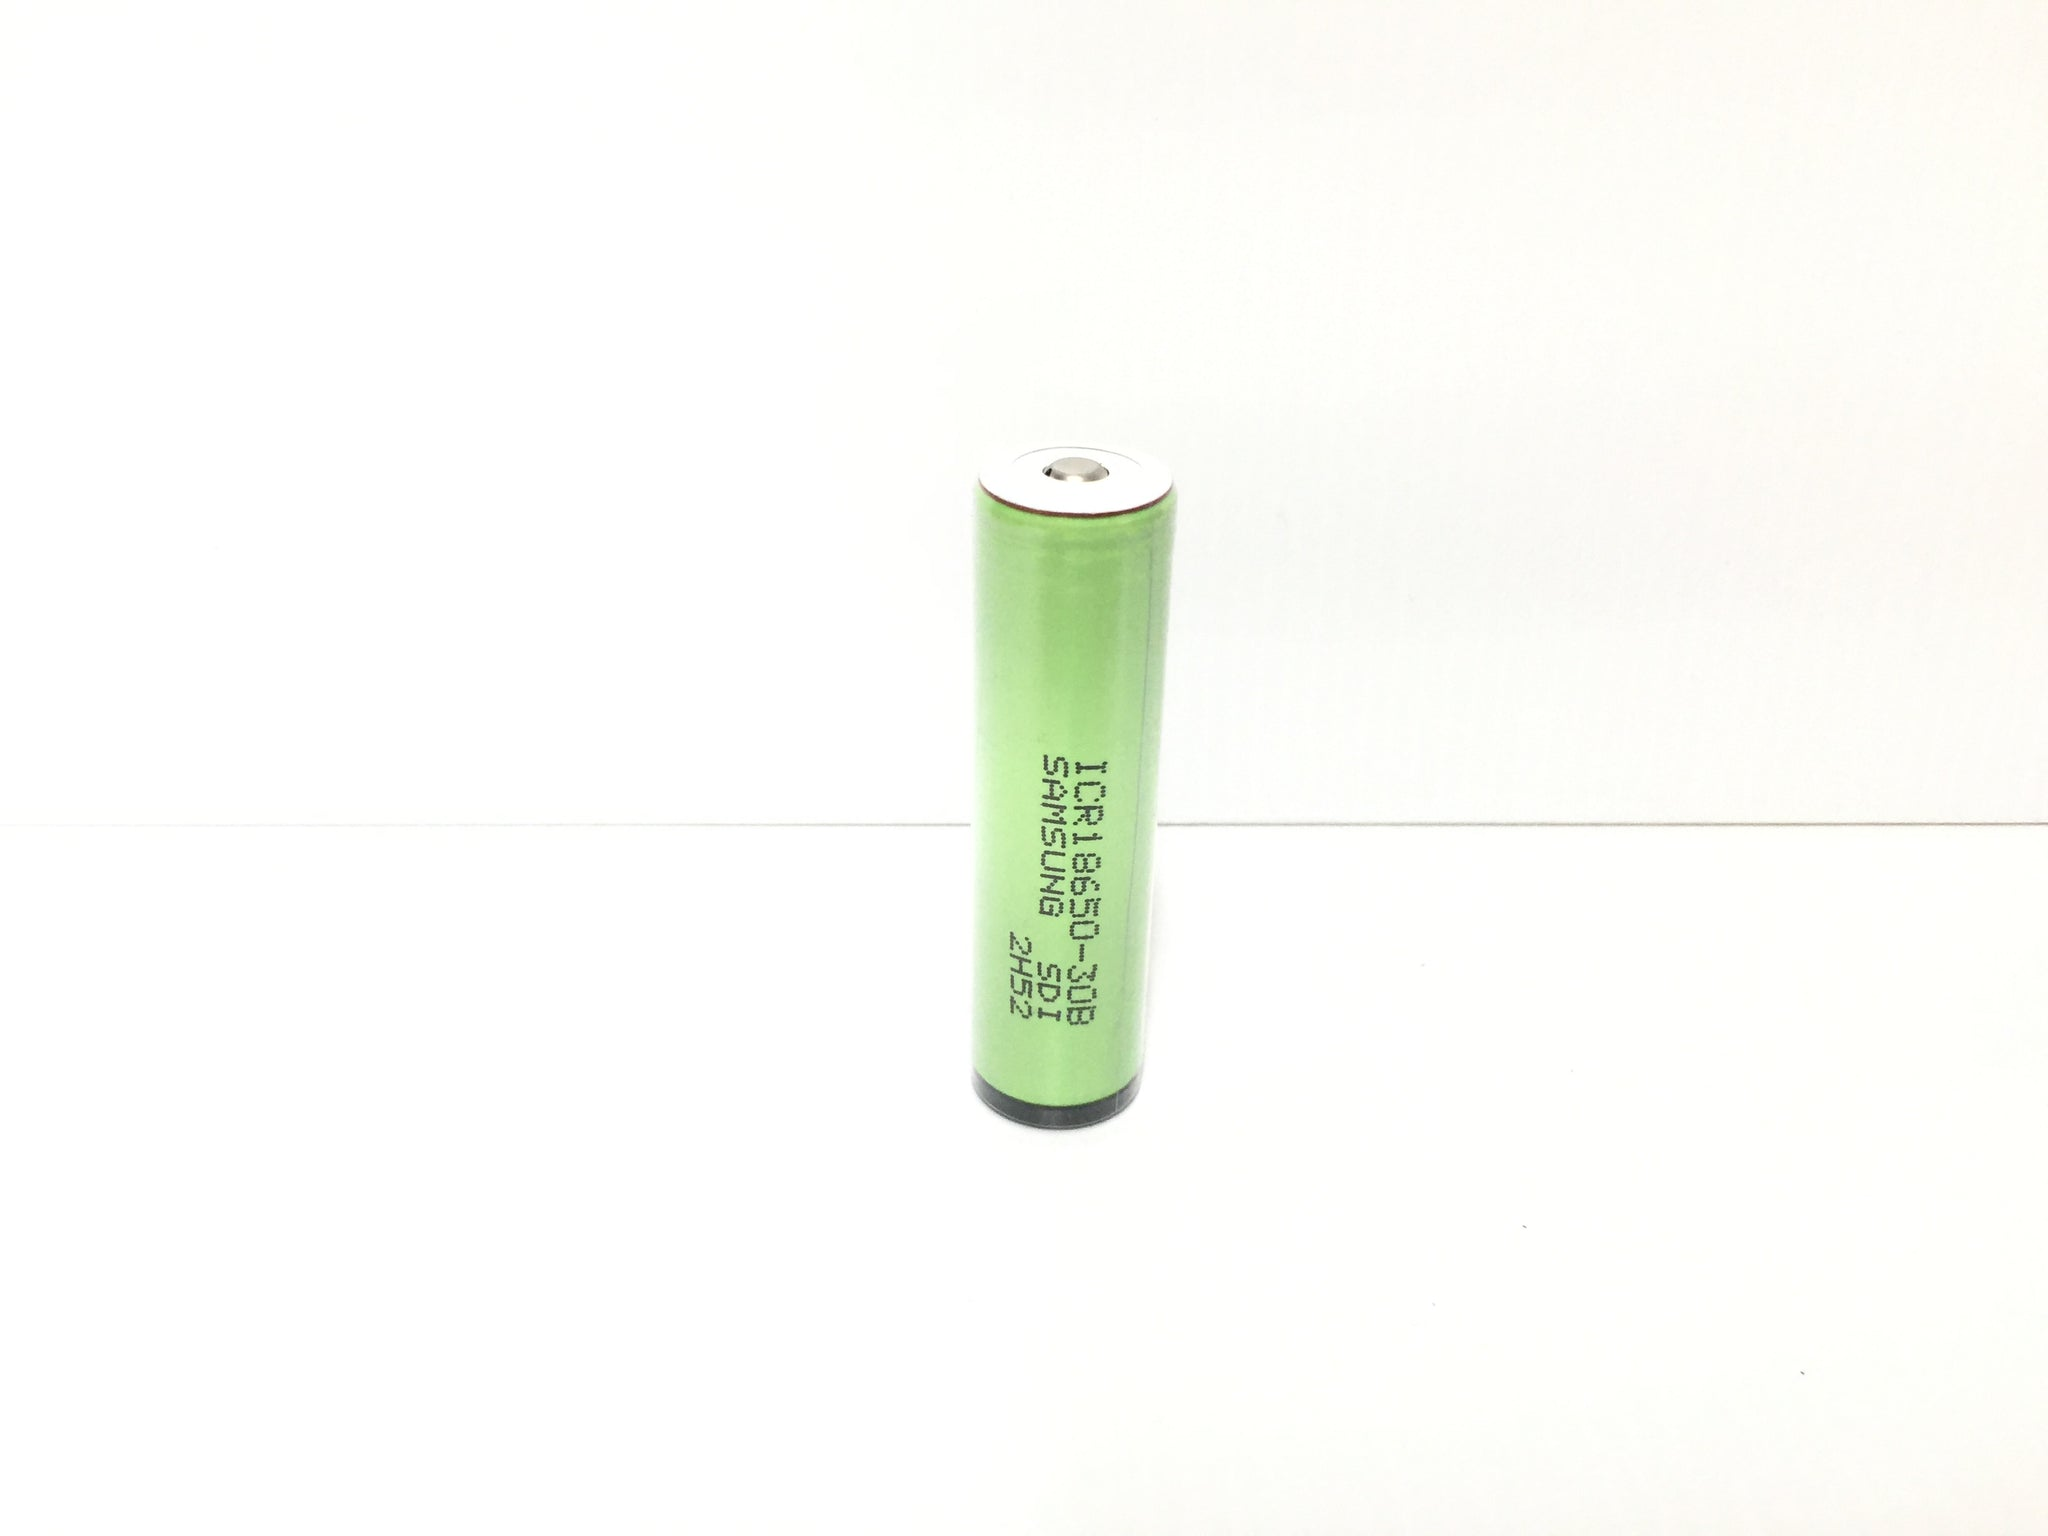 18650 Samsung Li-ion cell 3000mAh battery